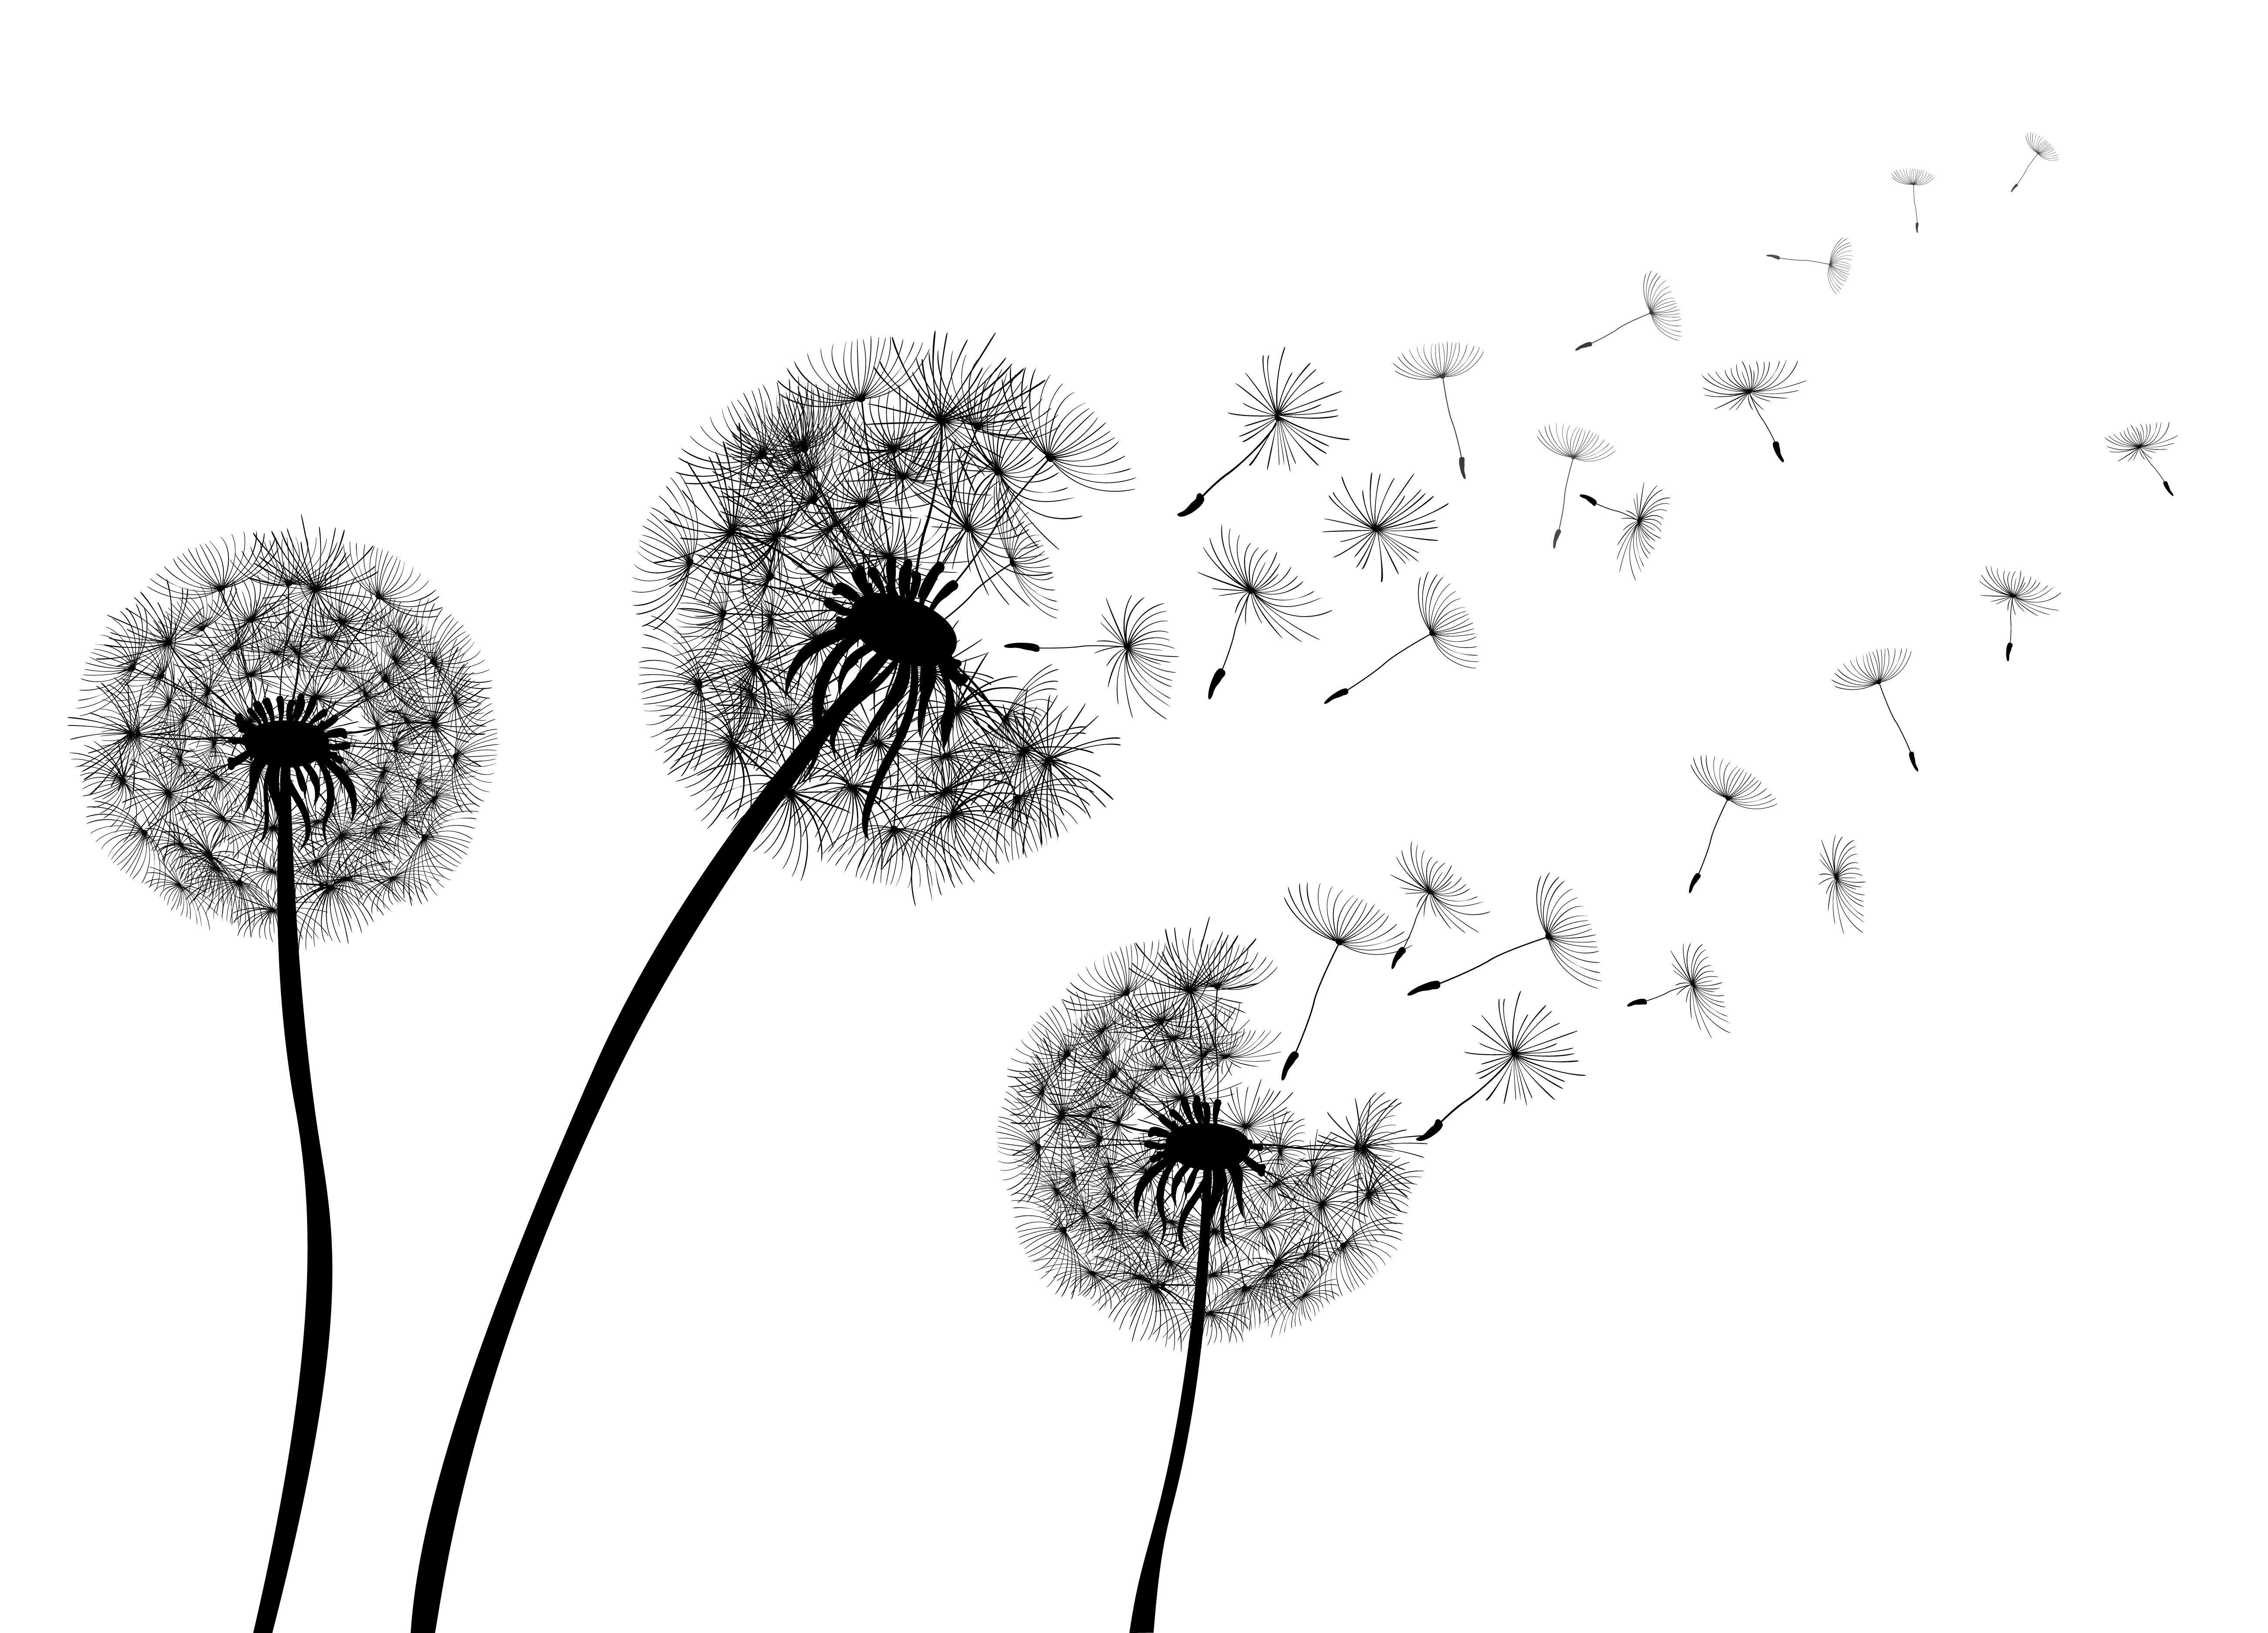 Dandelion - not only for making up your wishes, but also for getting rid of excessive water from your organism!